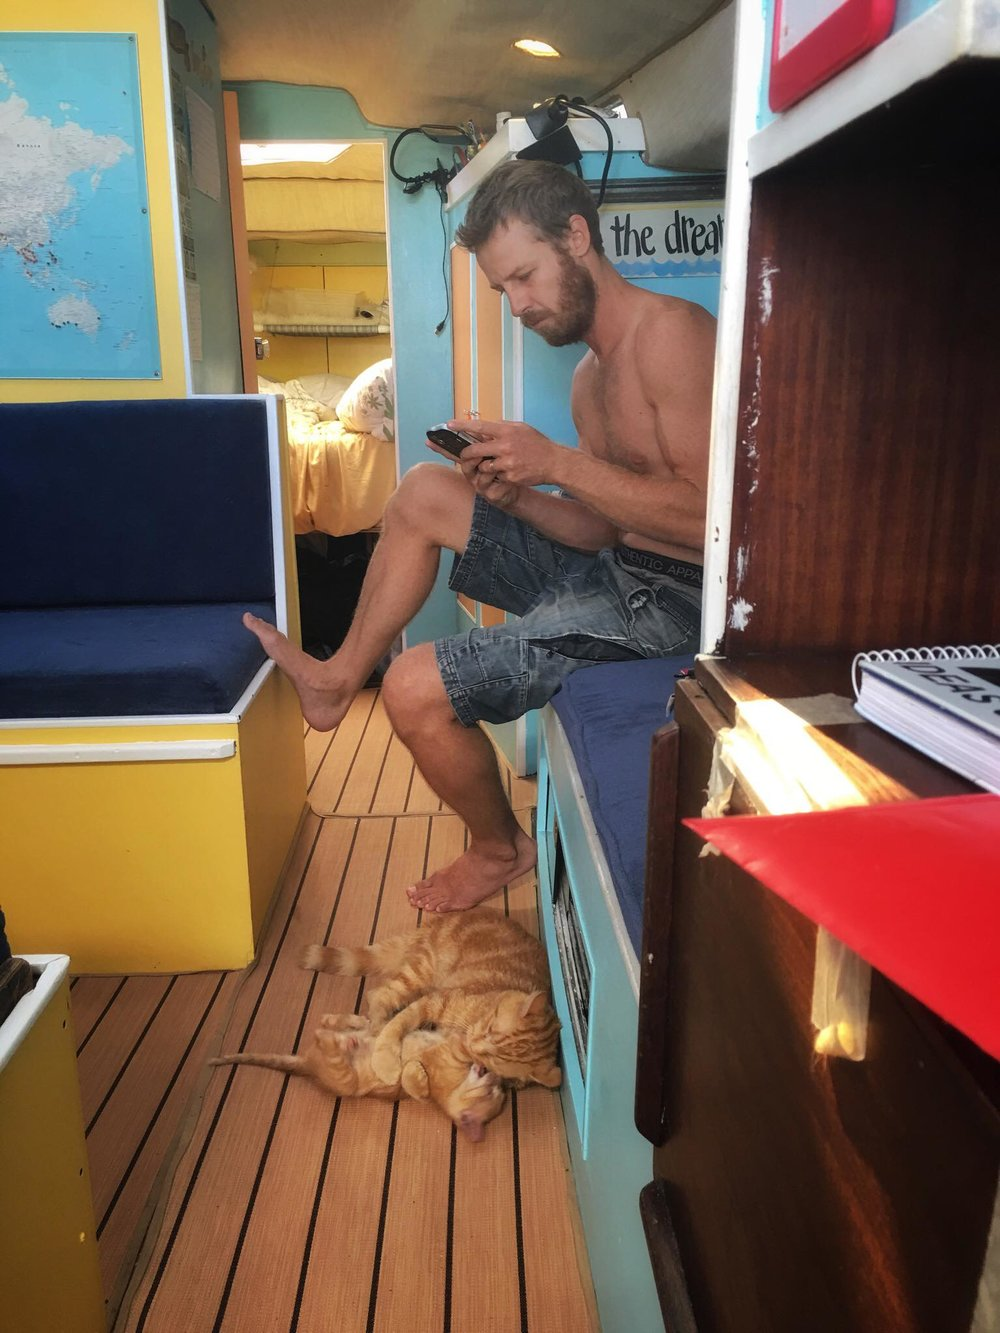 Liveaboard Life Day 152: What happened to the social life and adventure? Ha!